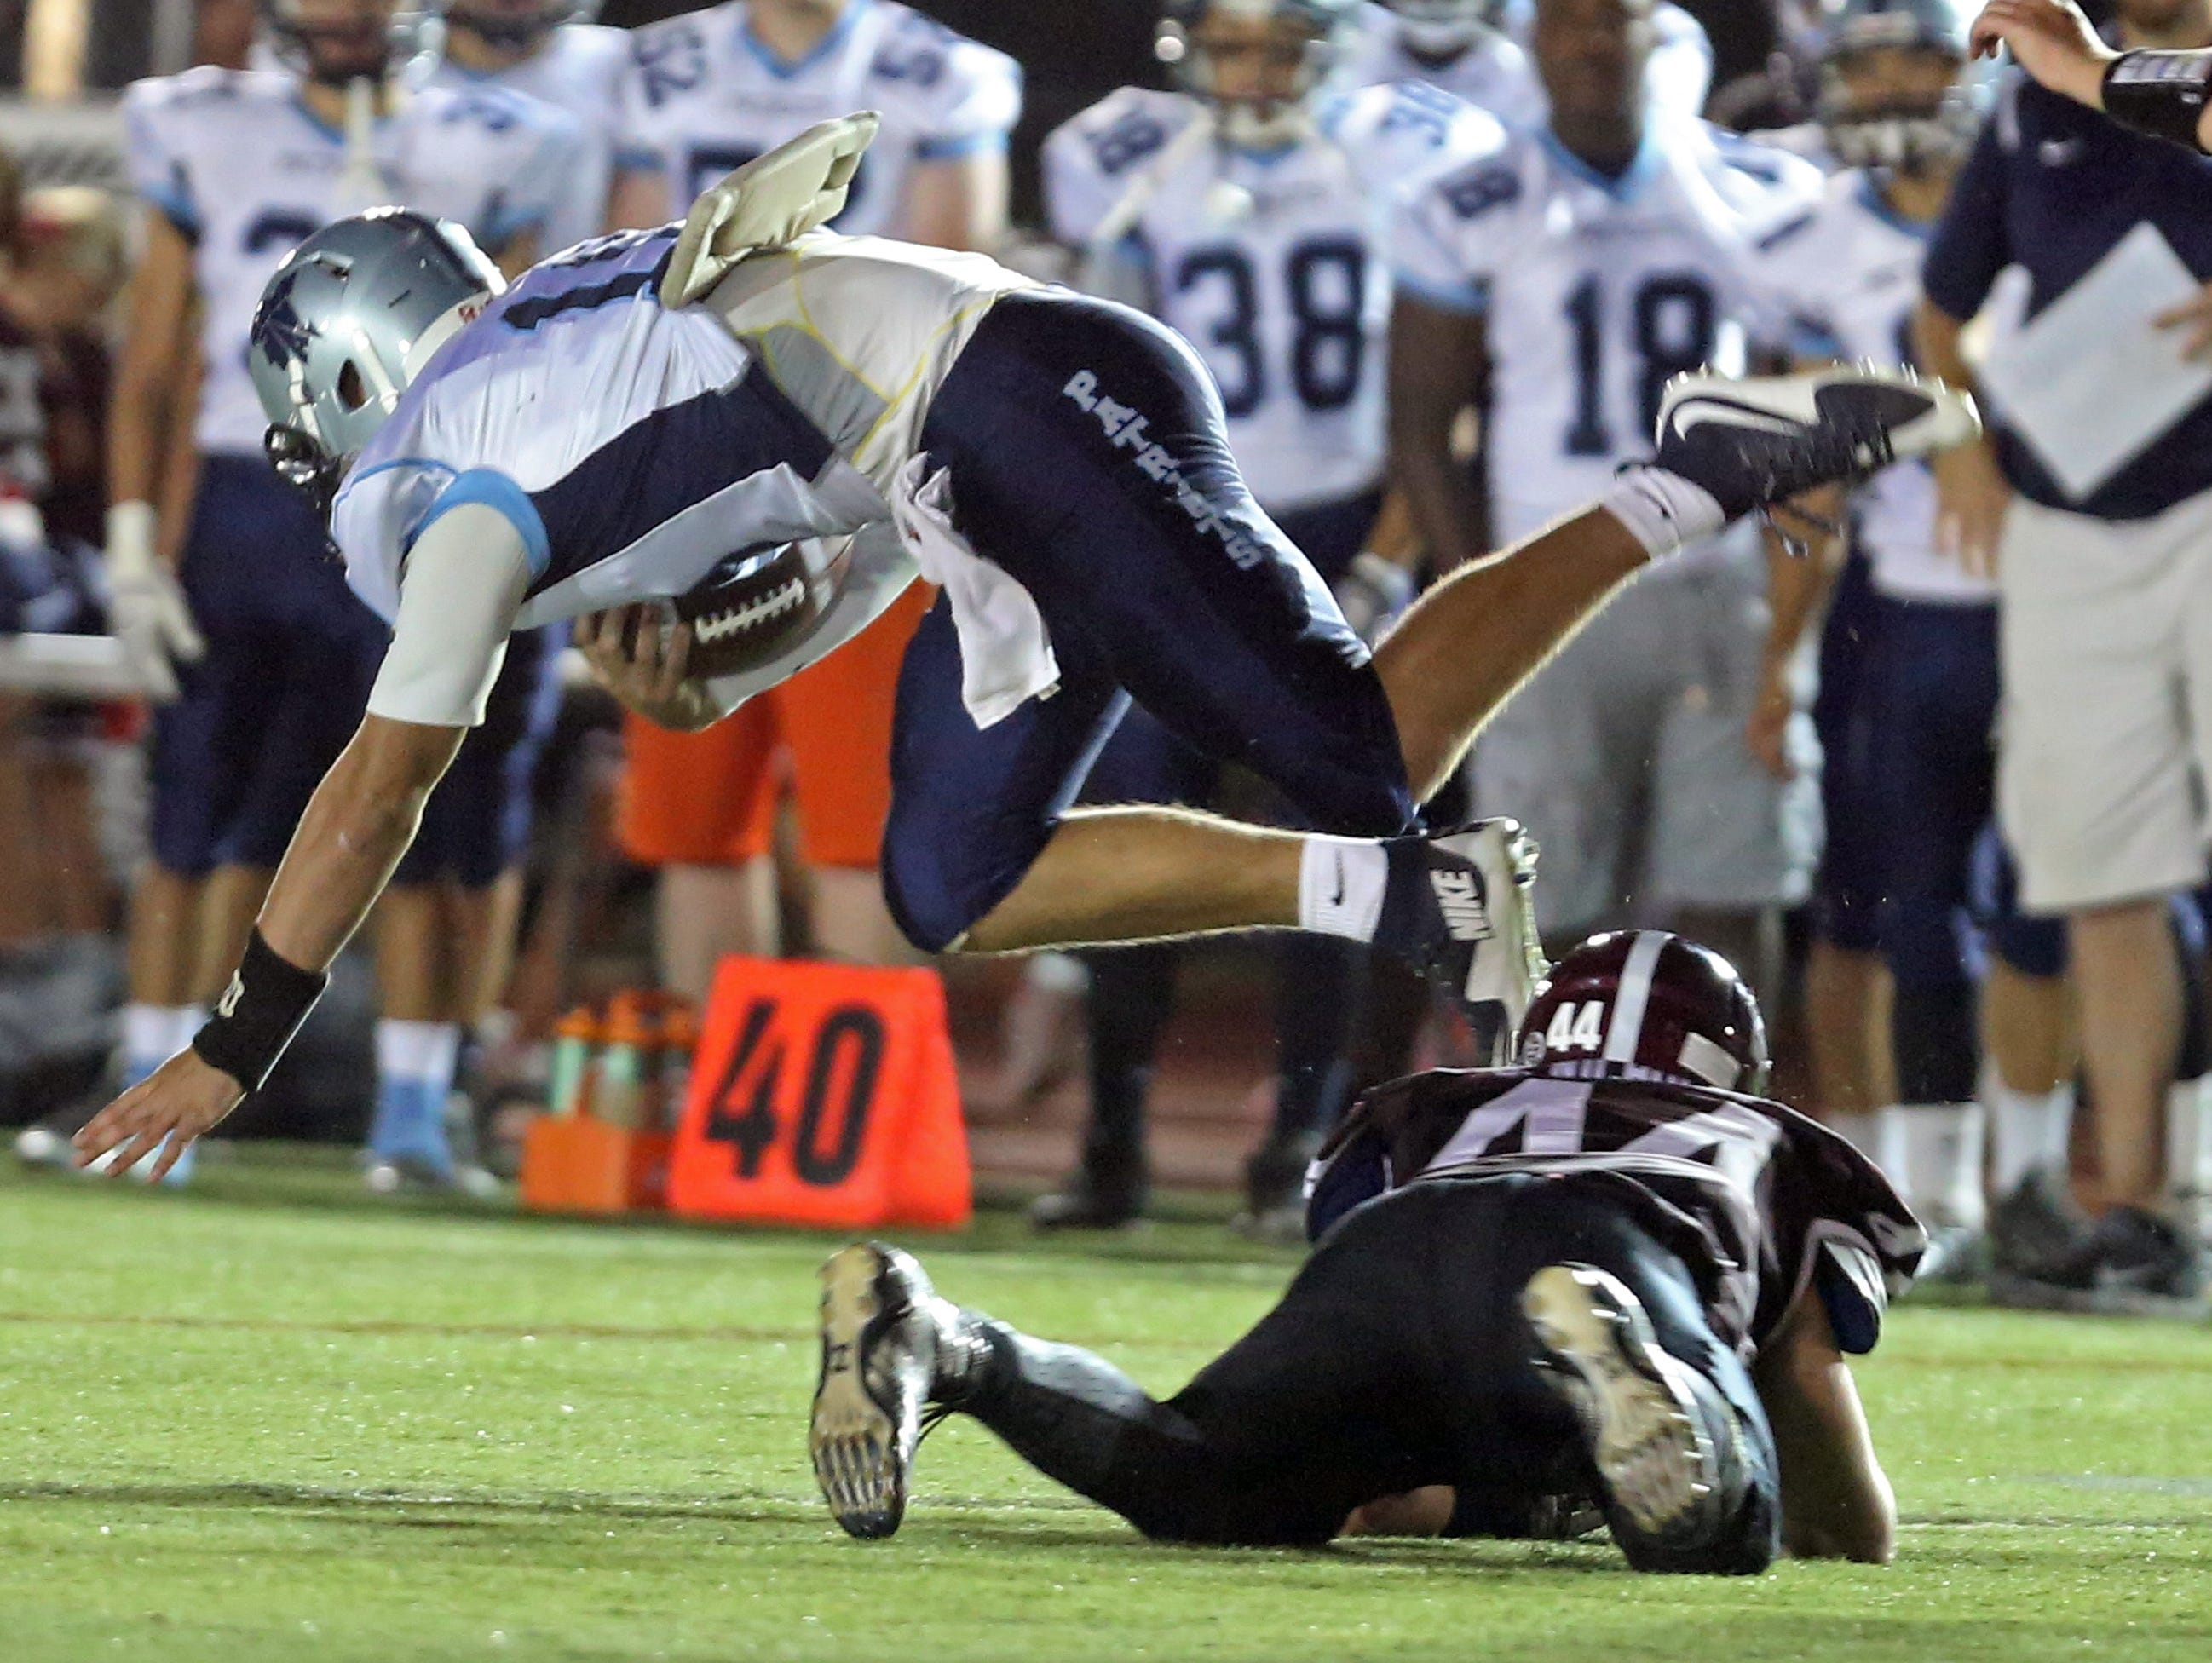 ]ohn Jay East Fishkill quarterback Ryan Schumacher flies over Scarsdale's Stephen Nicholas during a varsity football game at Scarsdale High School Sept. 25, 2015. John Jay defeated Scarsdale 36-14.